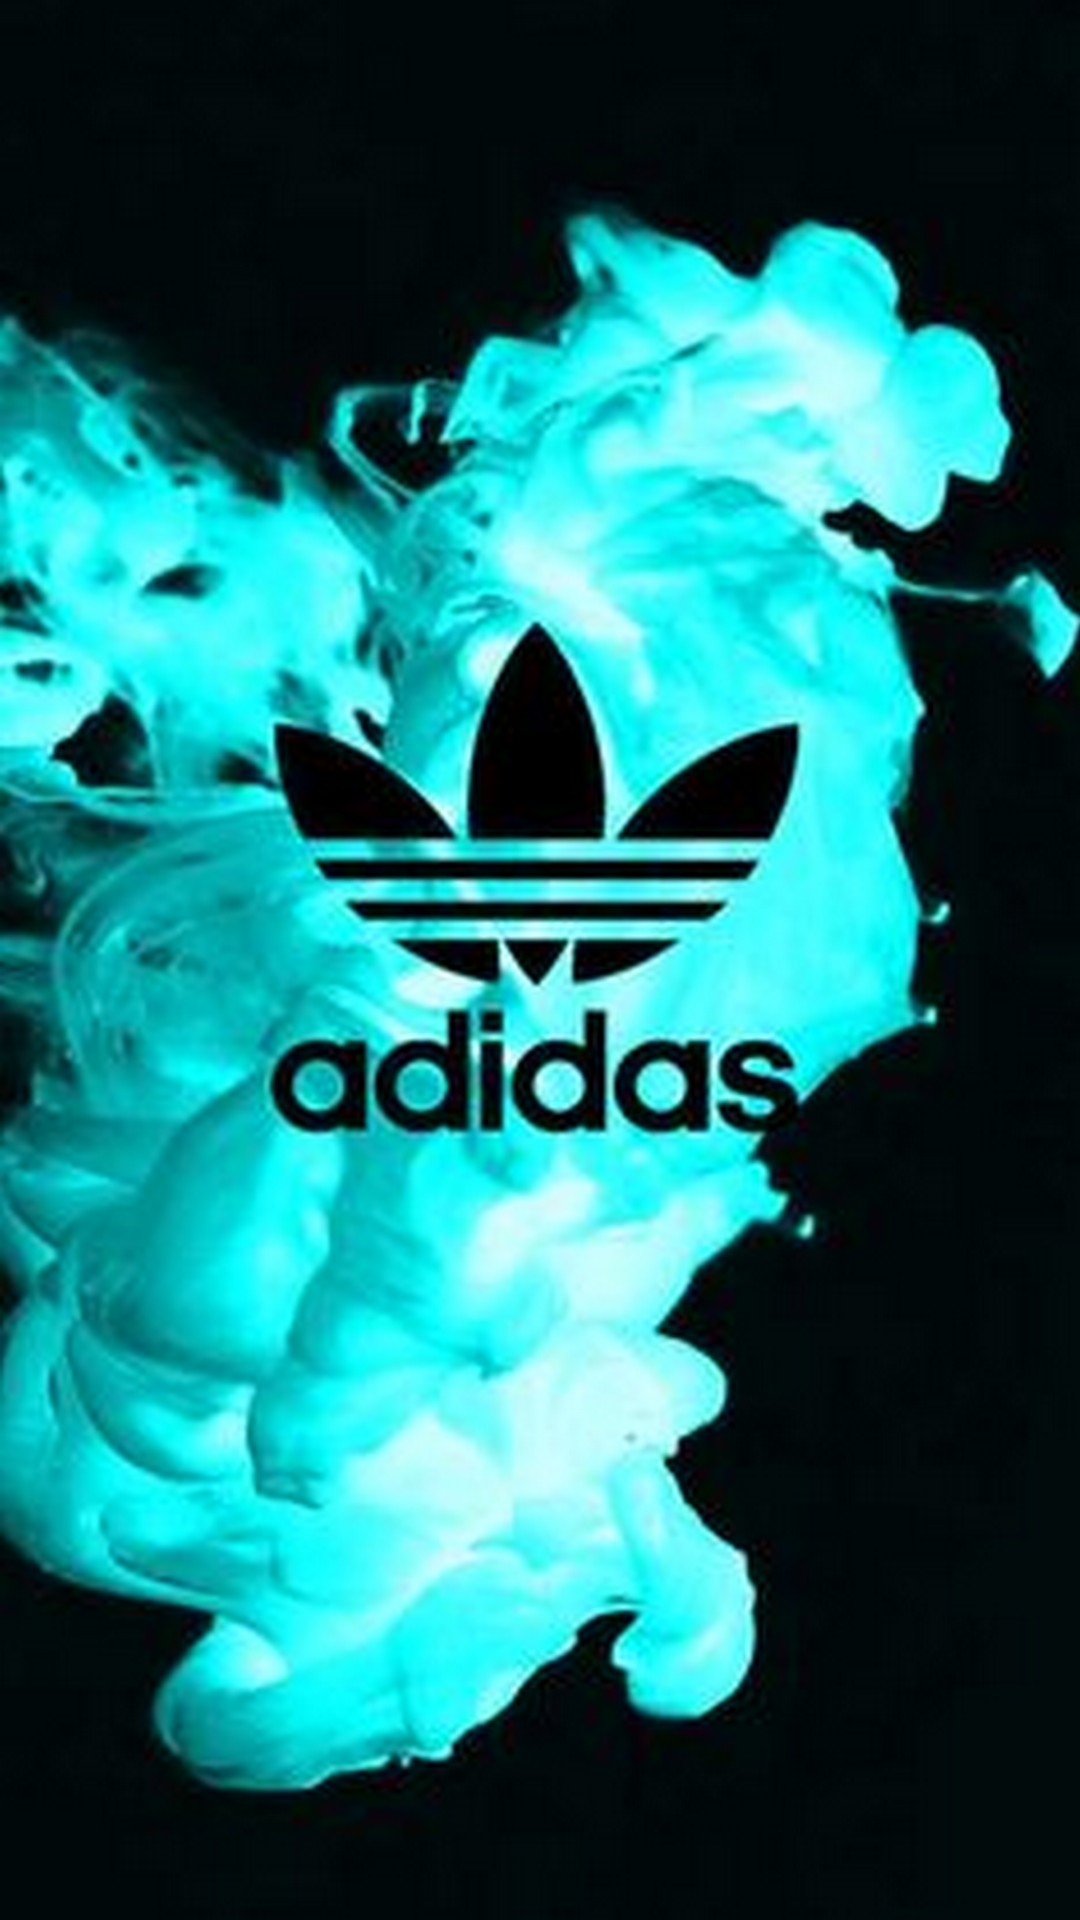 Adidas Wallpaper Iphone 6 Posted By Christopher Anderson